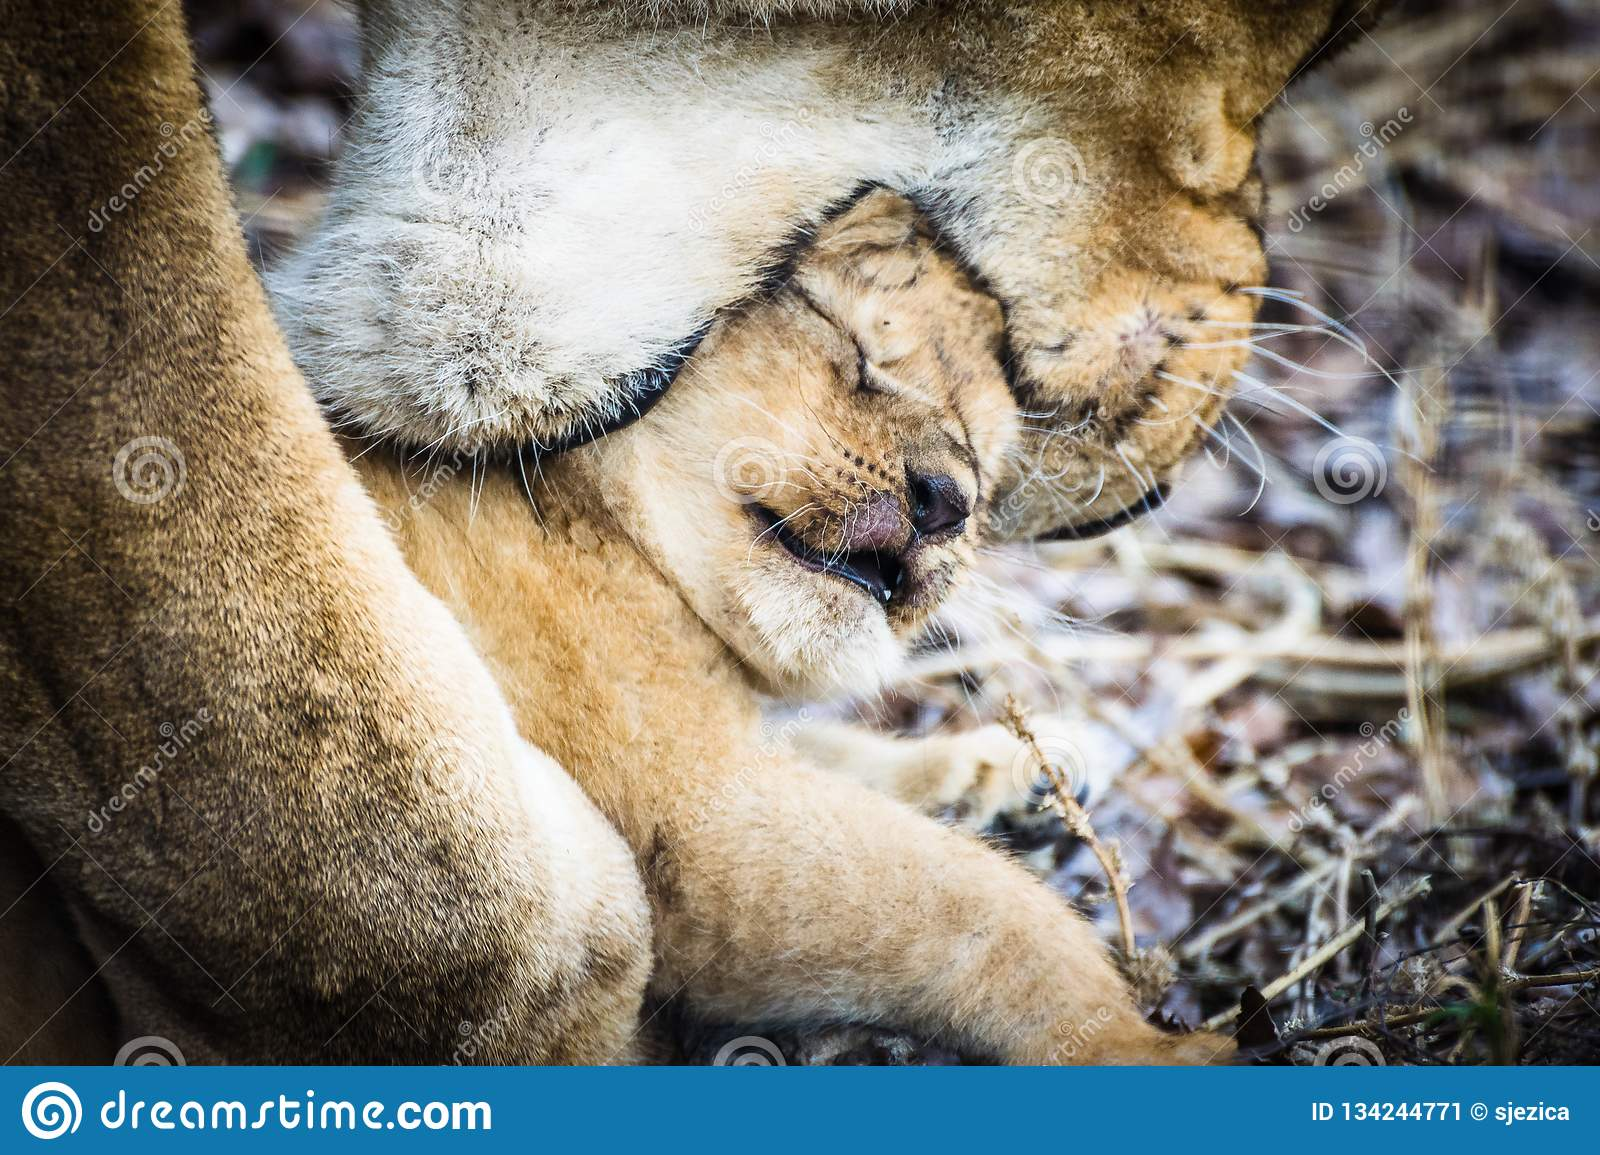 Liones mother Panthera leo carries her baby in the mouth